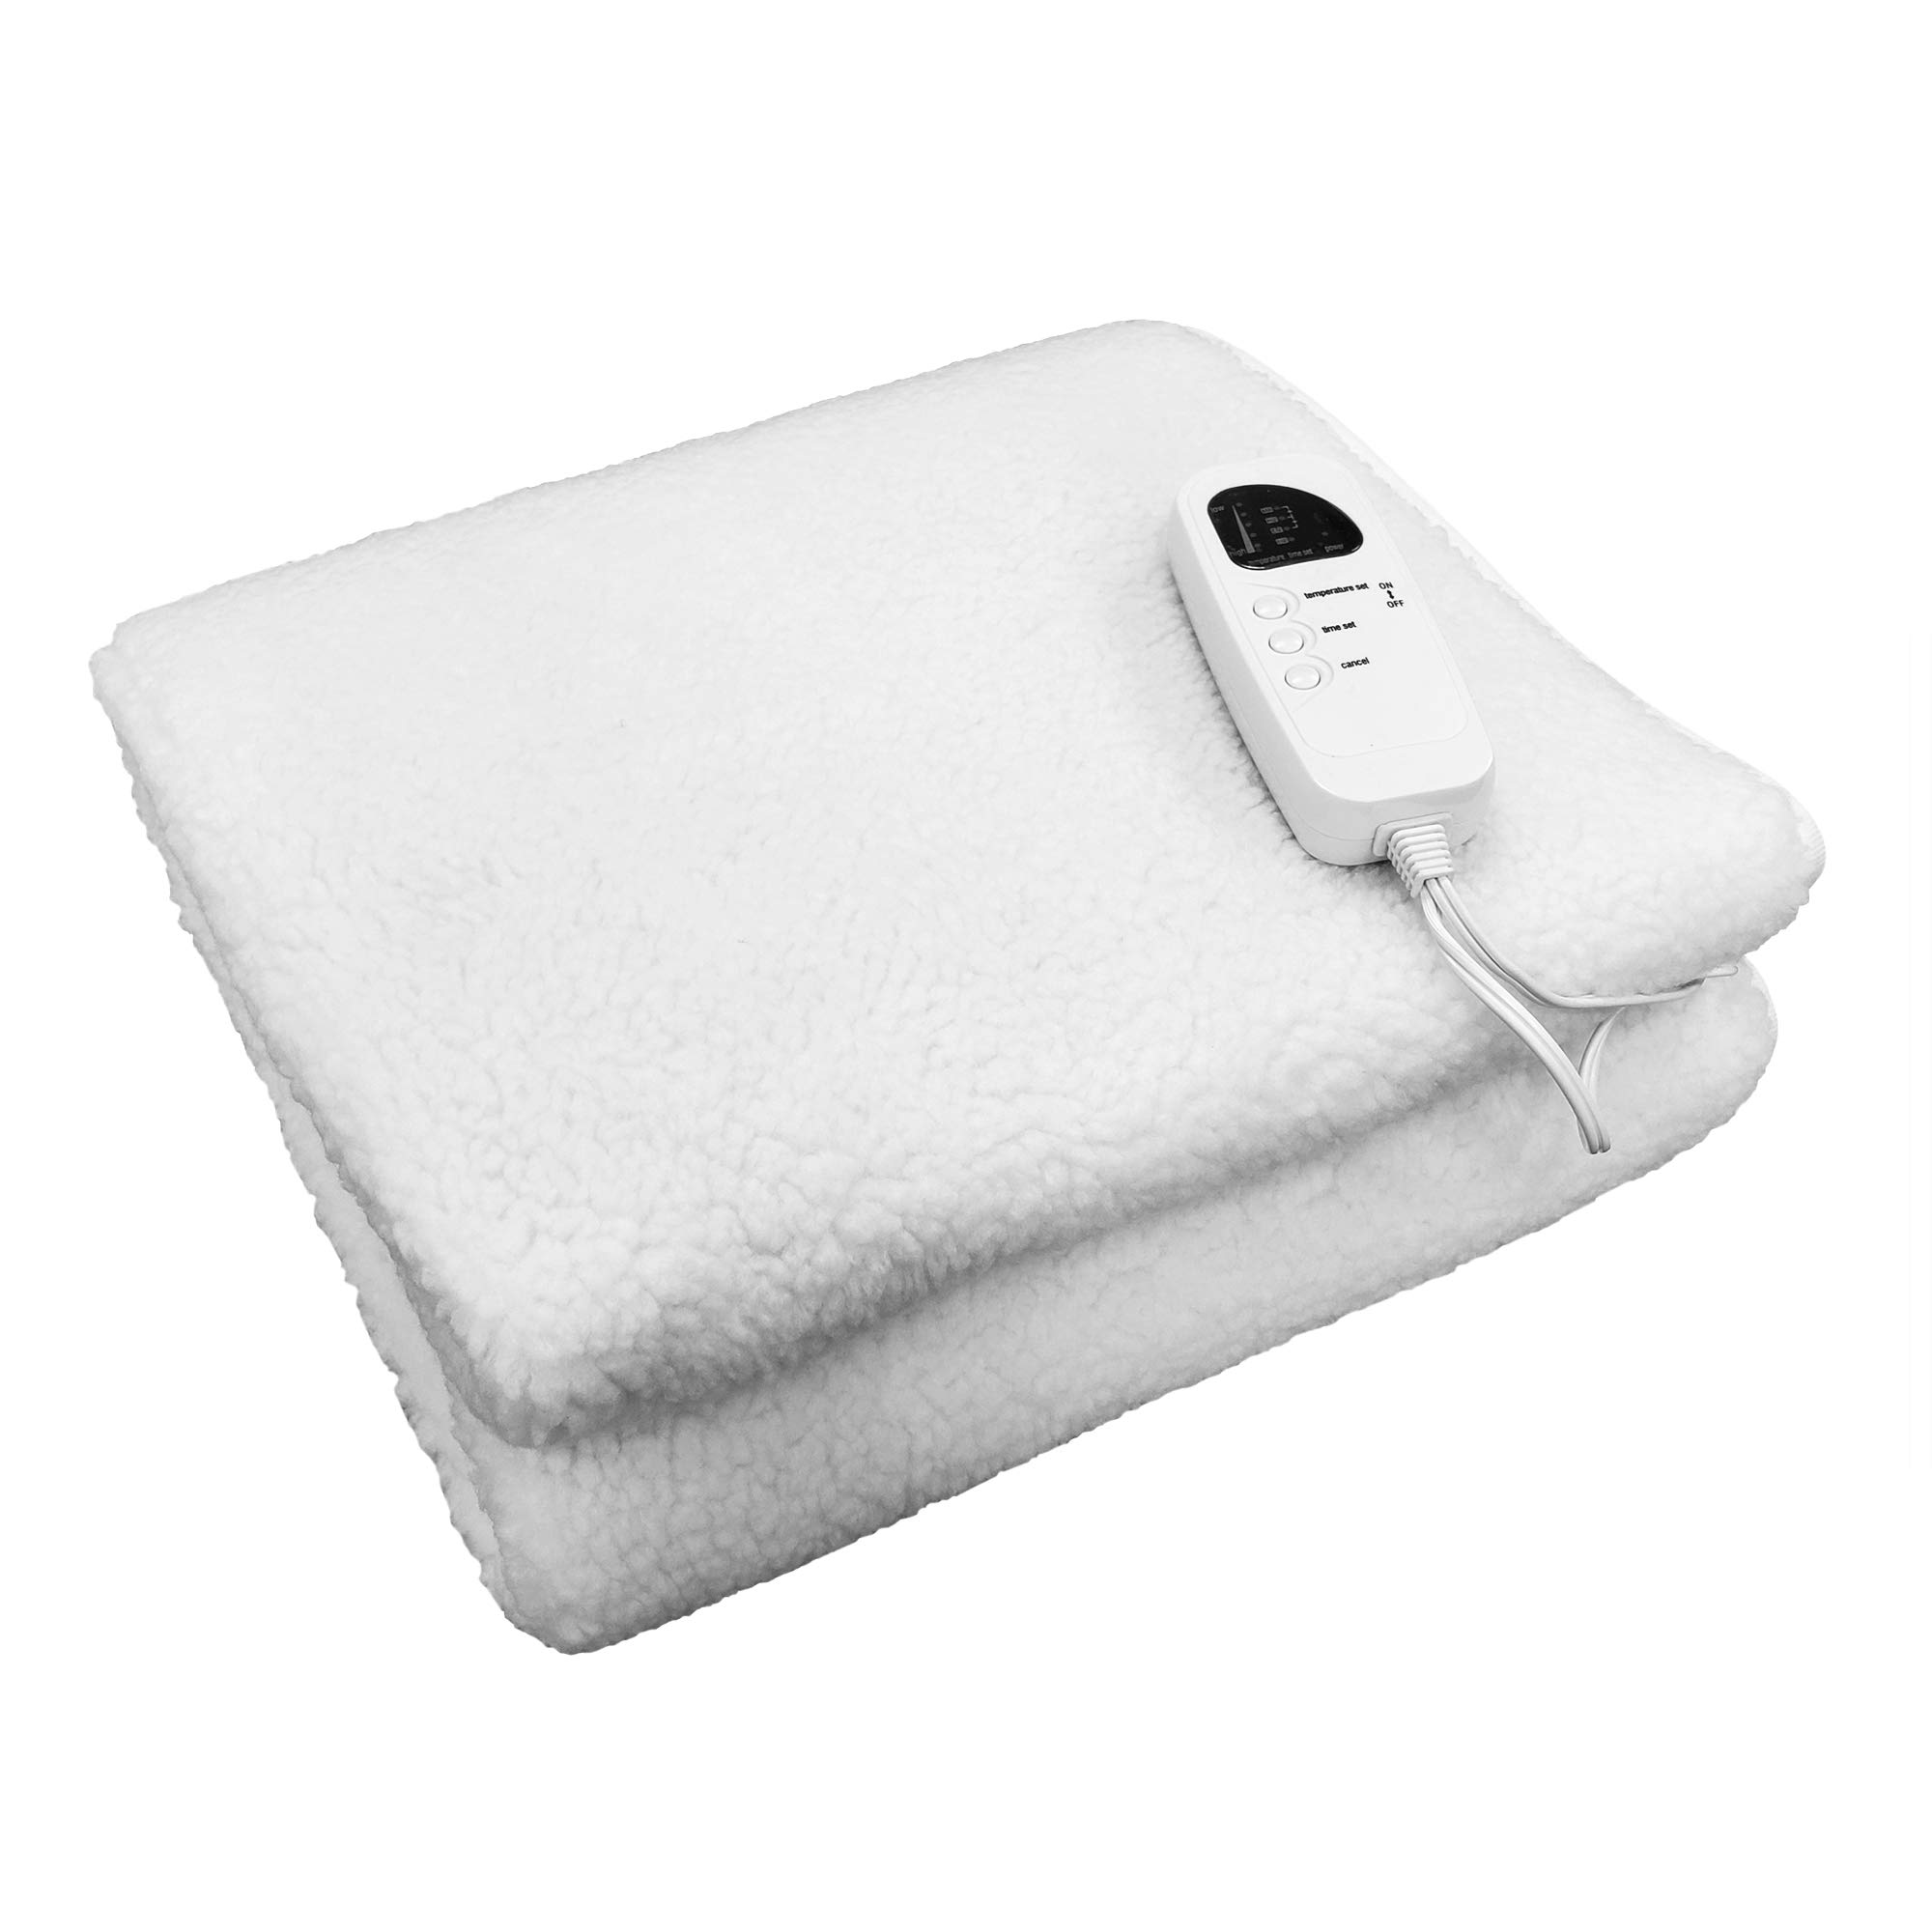 Deluxe Massage Table Warmer Pad Cover Fleece Blanket- 5 Heat Settings by TOA Supply